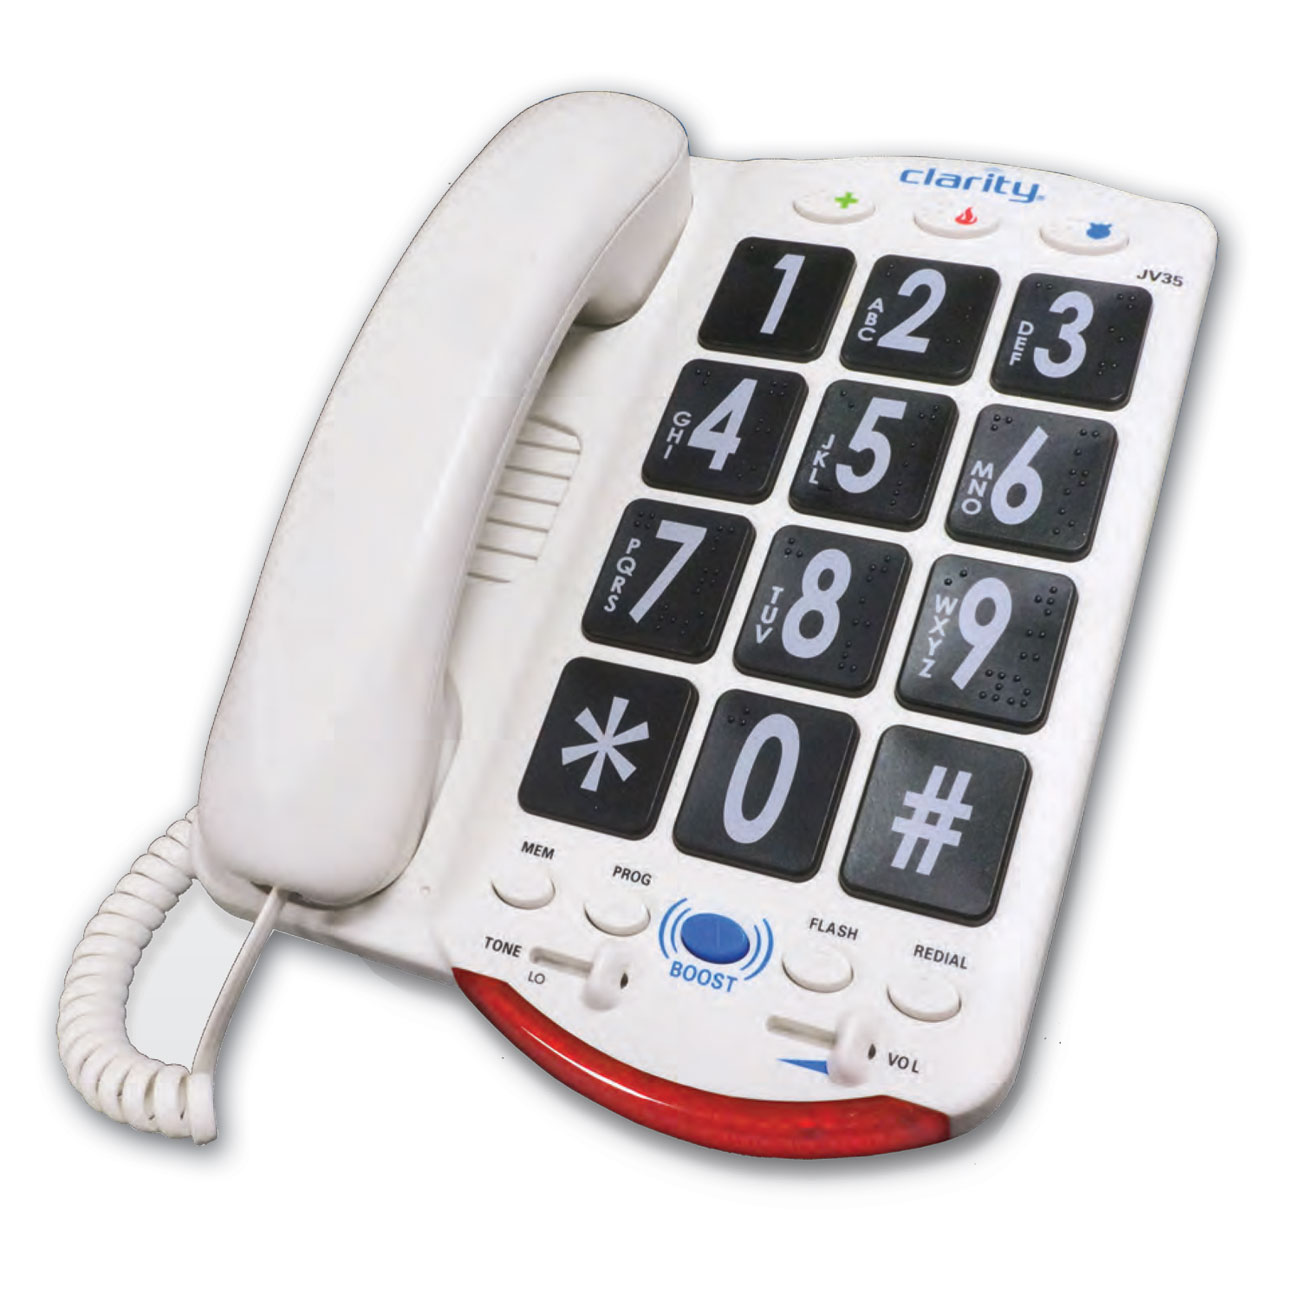 Clarity JV35 50dB Amplified Telephone with Talk Back - Black Buttons